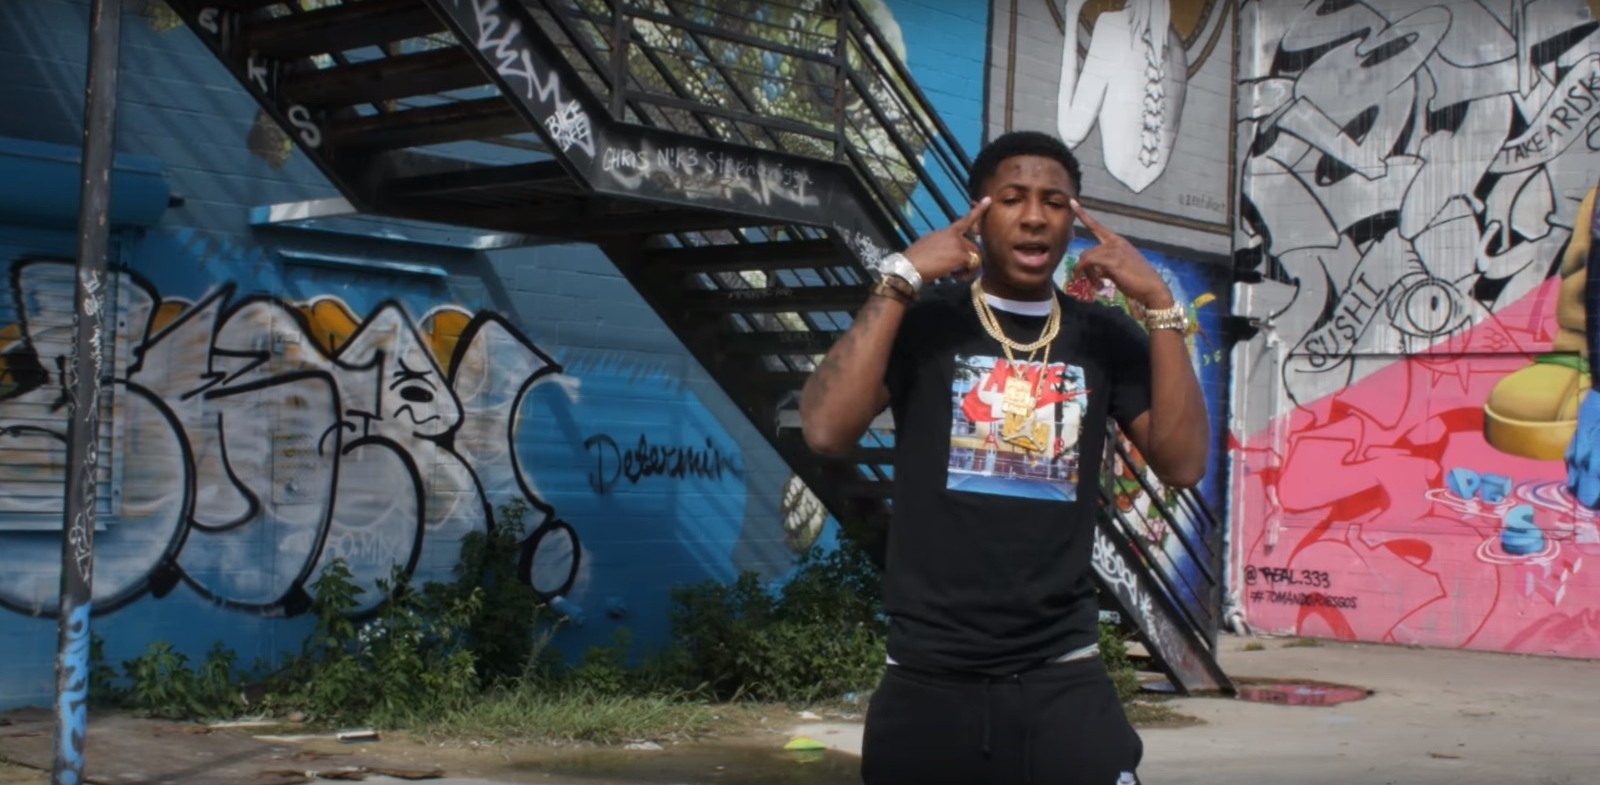 Nike T-Shirt And Sweatpants - YoungBoy Never Broke Again - Graffiti (2017) - Official Music Video Product Placement